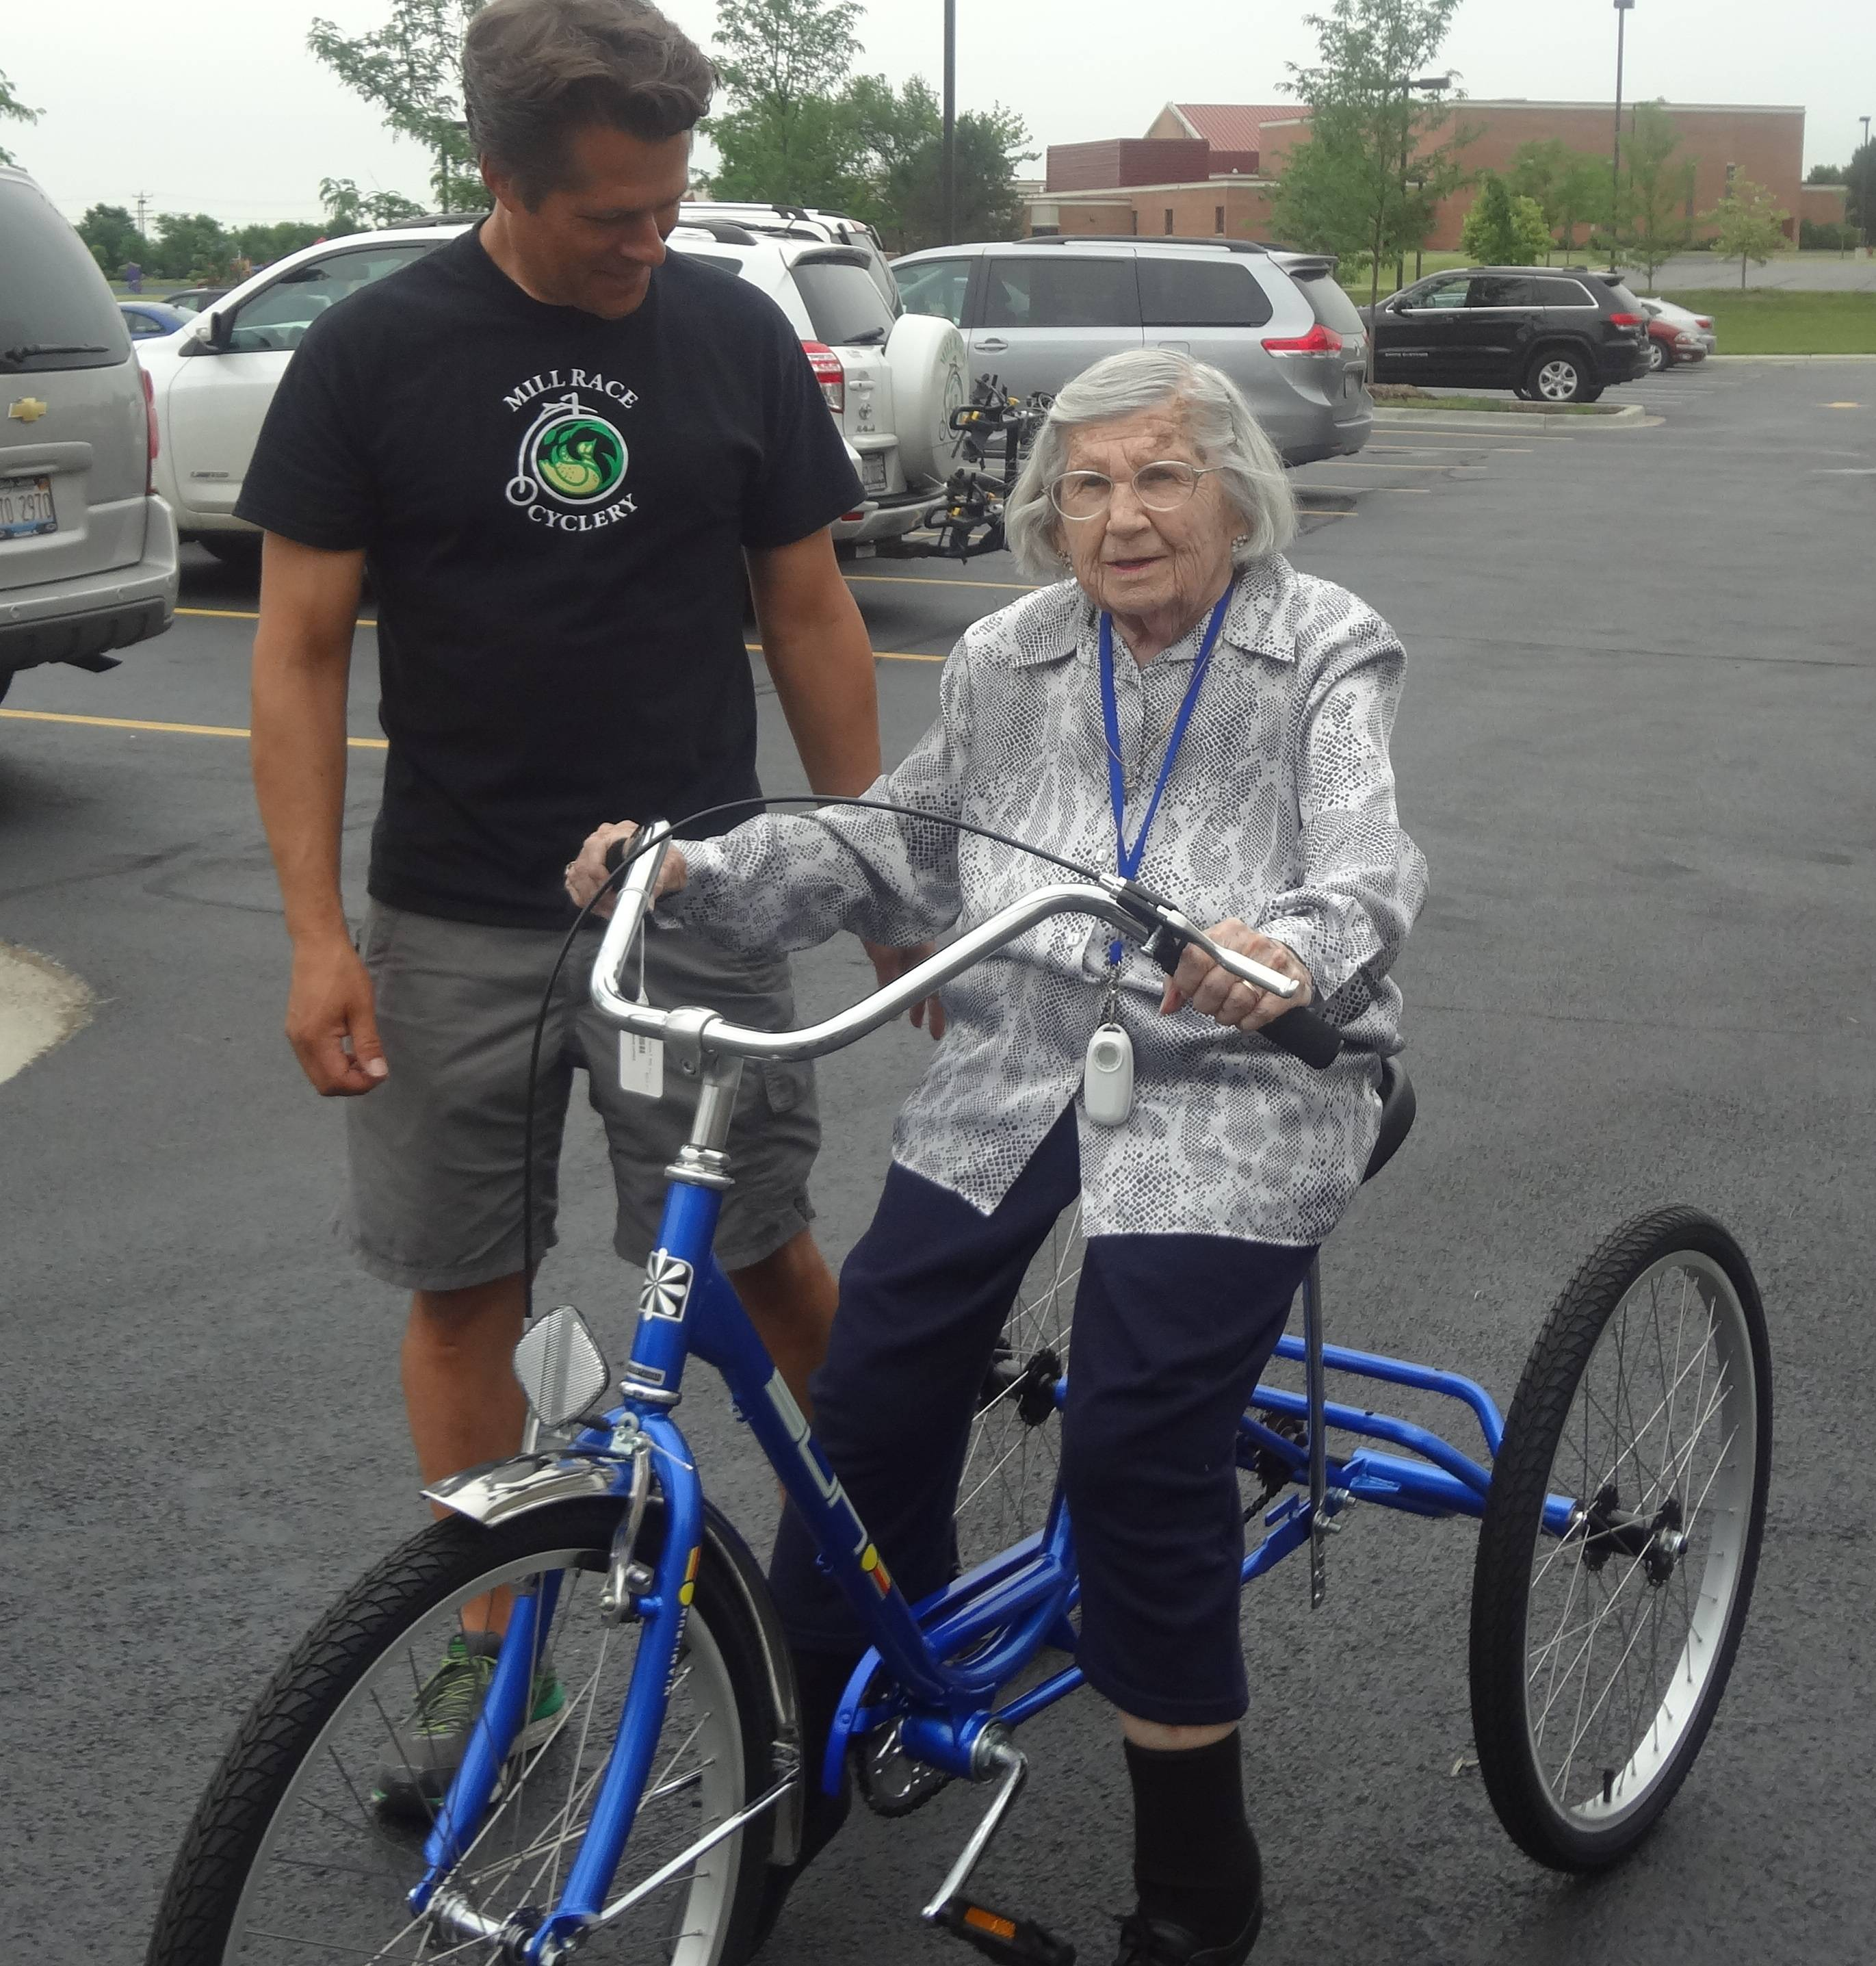 GreenFields of Geneva resident Clara VanBosch, age 100, was offered the chance to ride a trike provided by Mill Race Cyclery.